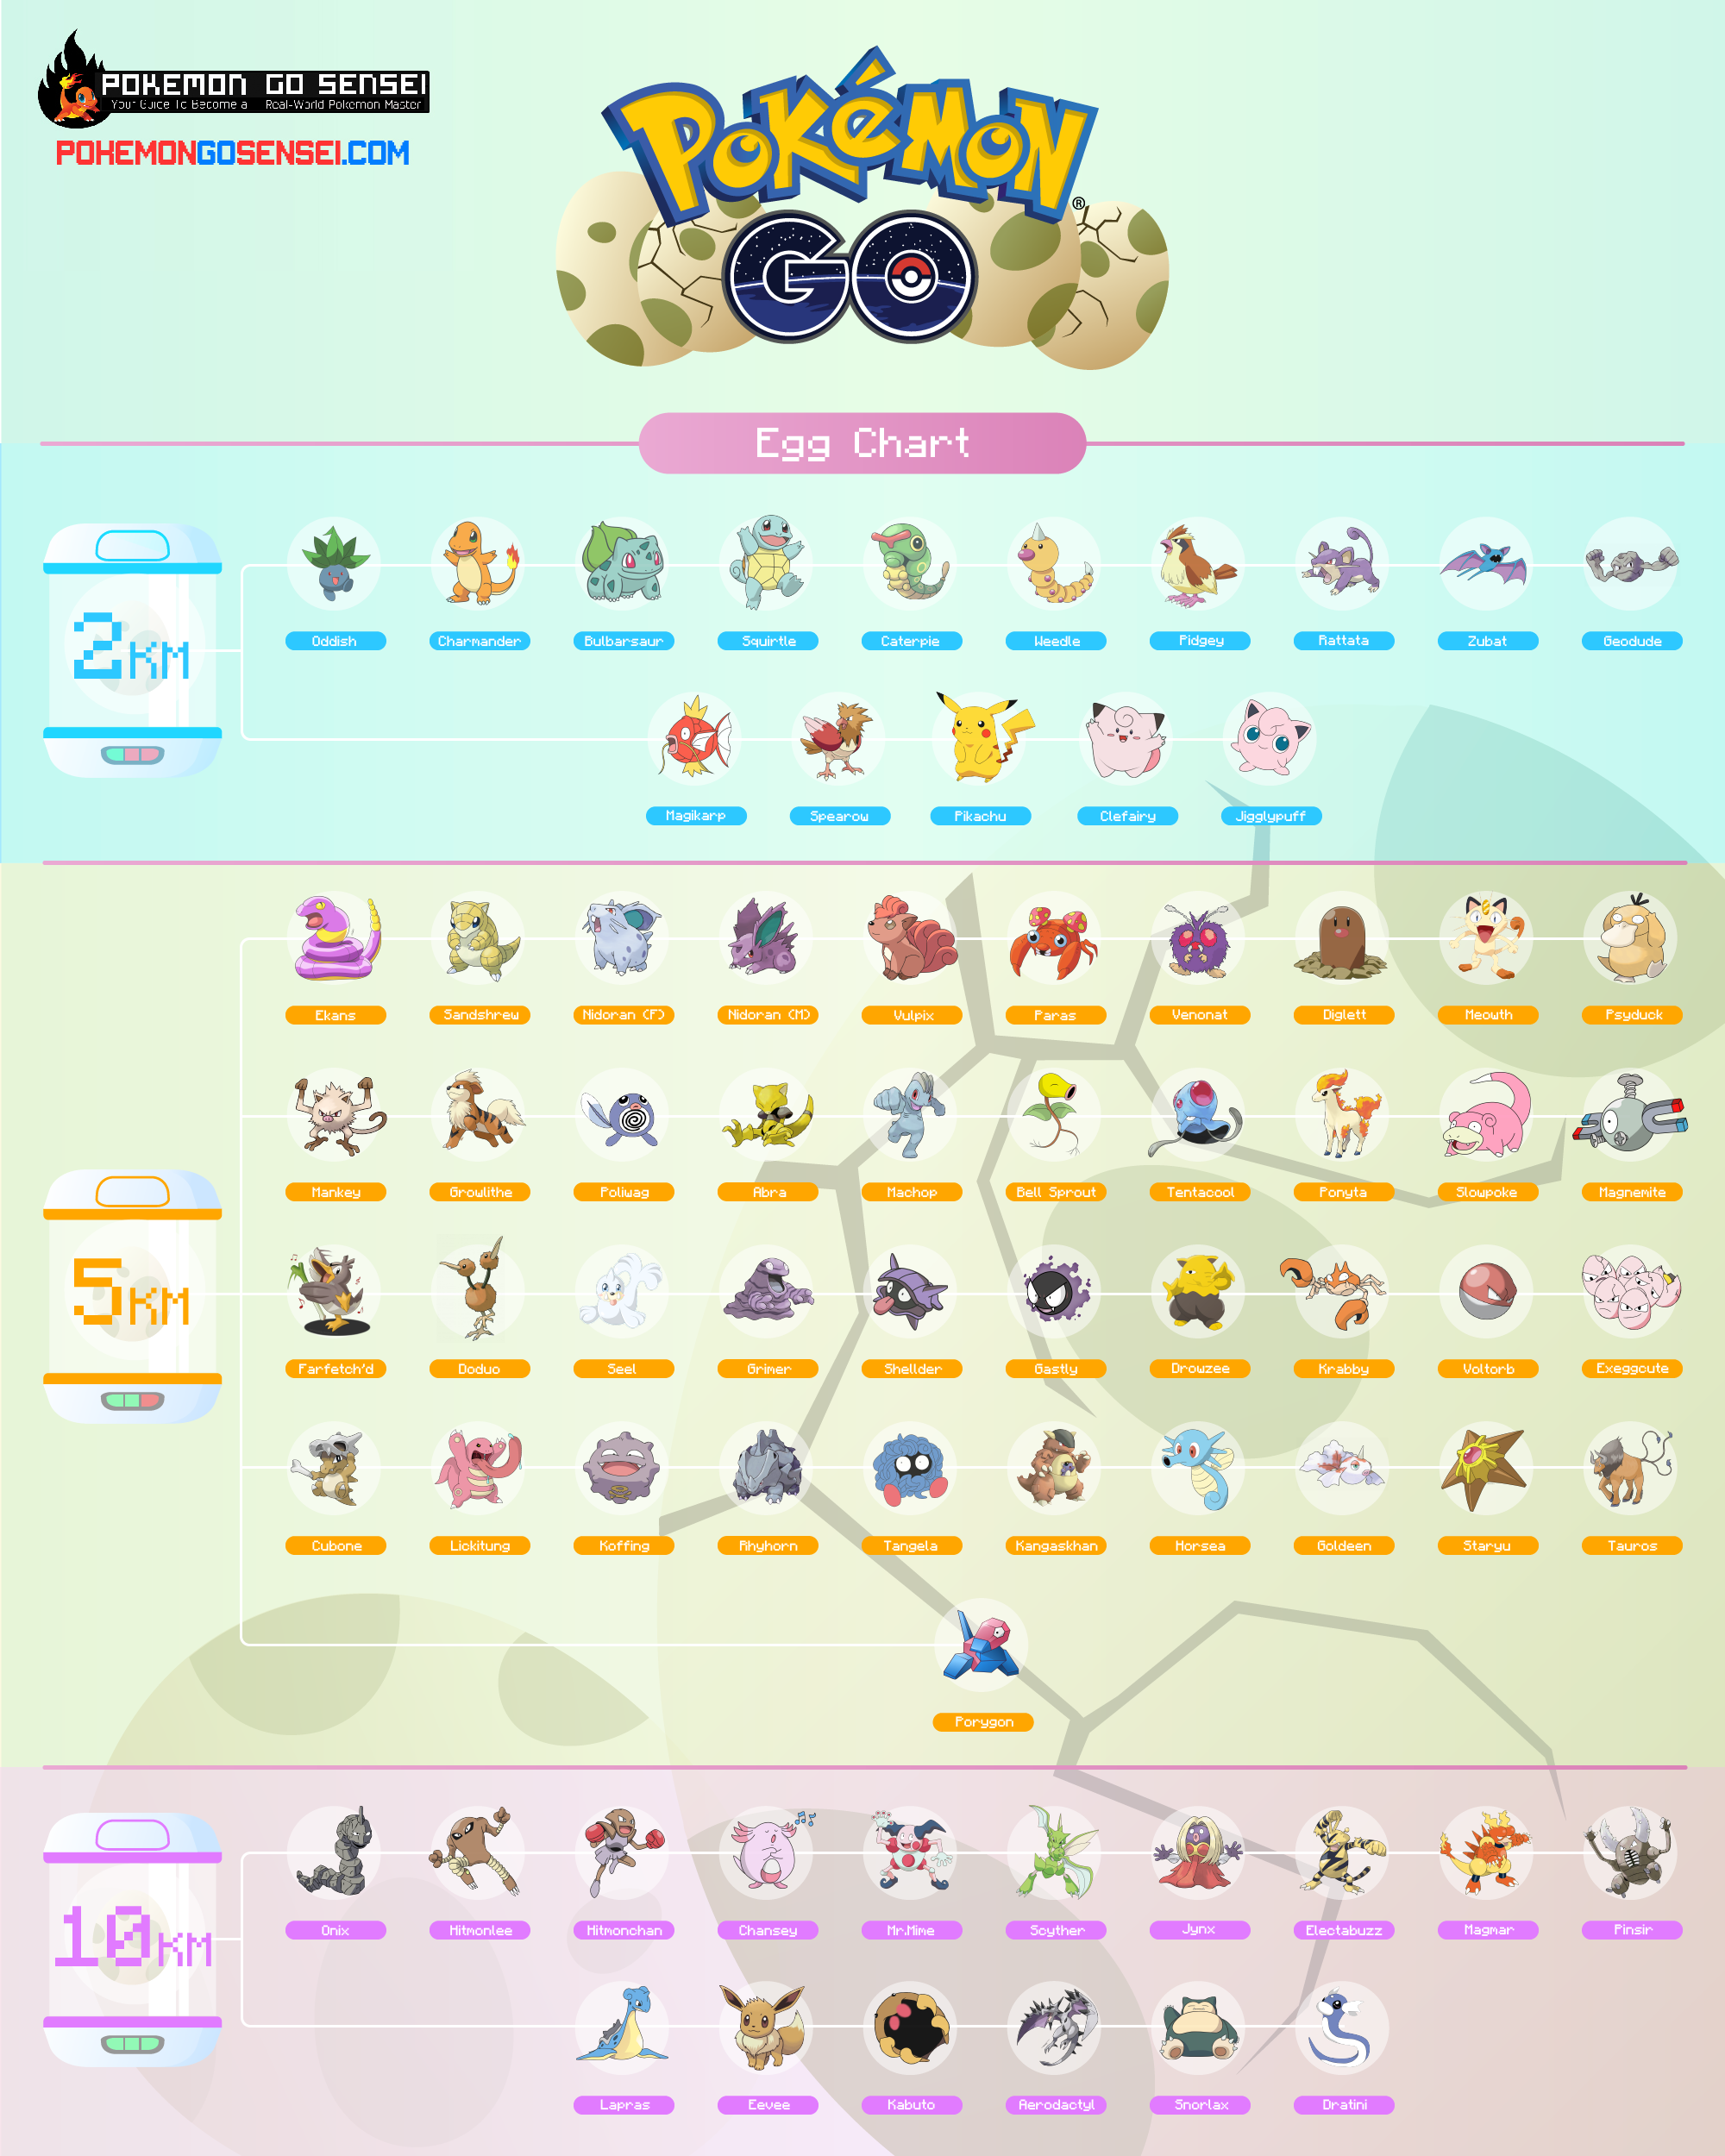 Pokemon Go Egg Chart The Ultimate Guide To Hatching Eggs Sensei